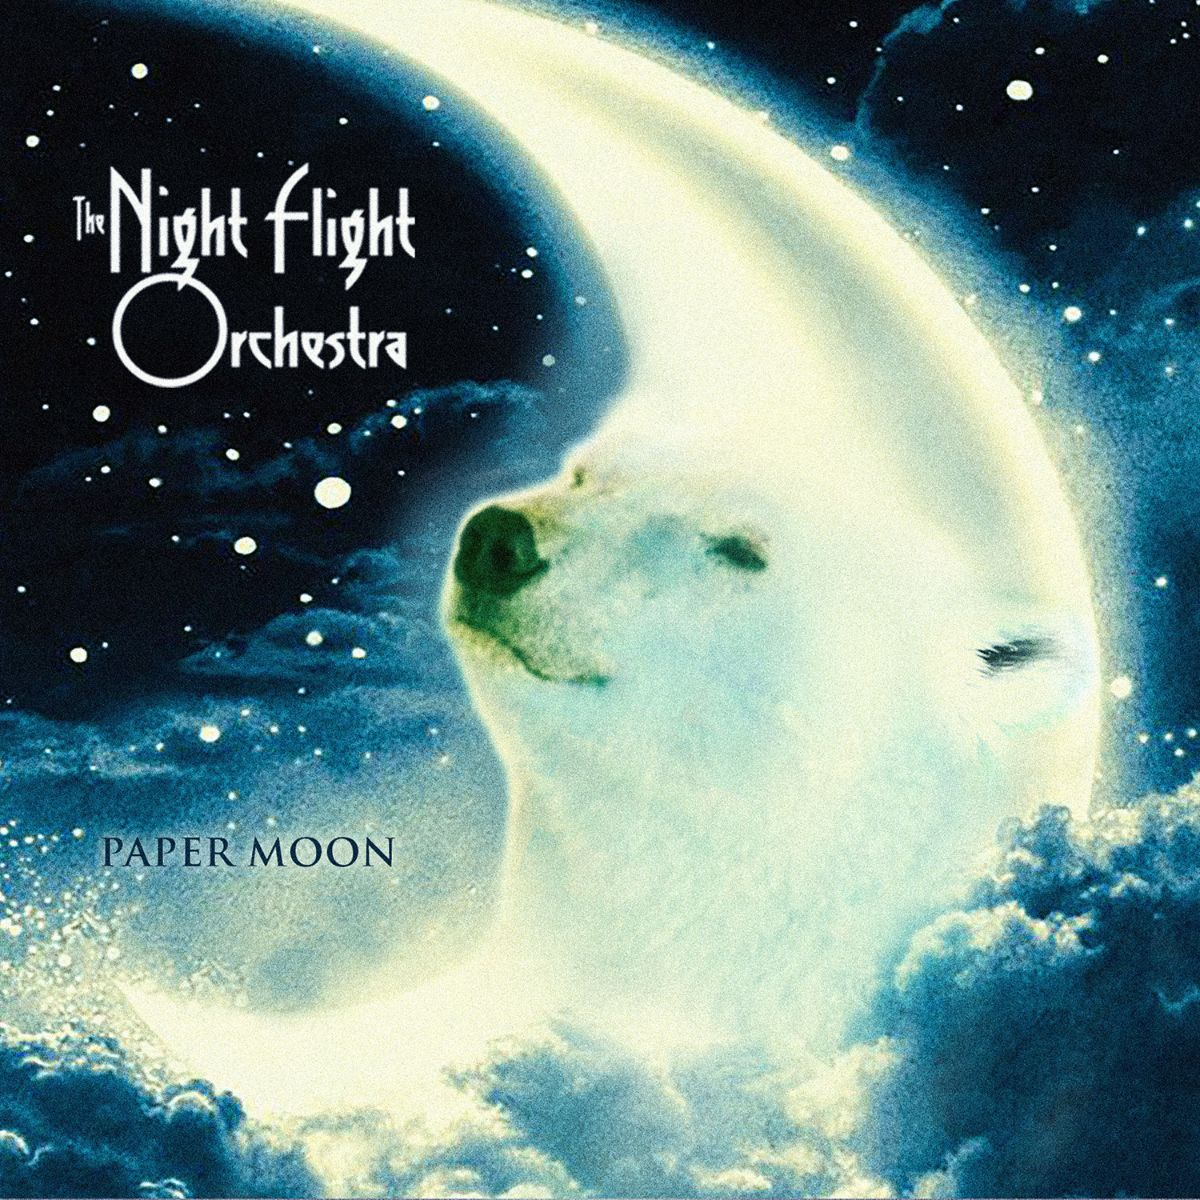 the night flight orchestra paper moon